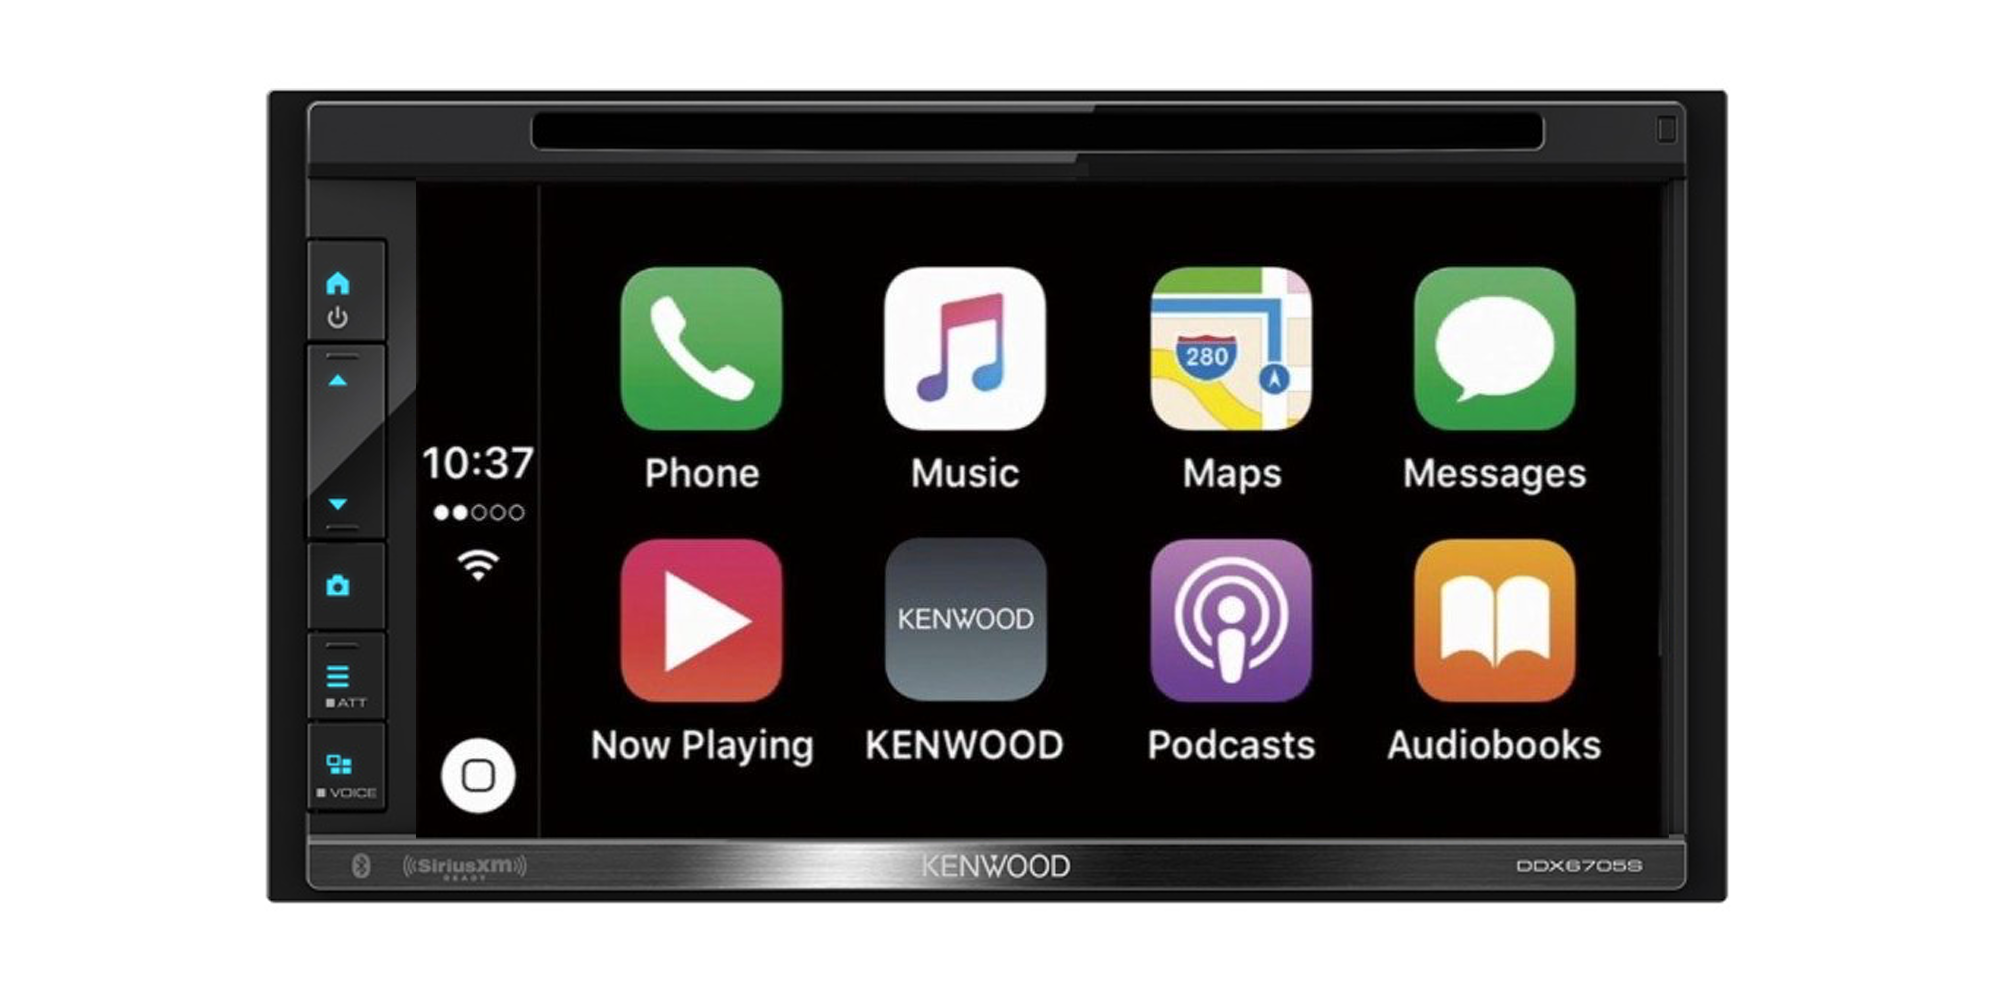 Kenwood S 7 Inch In Dash Receiver Brings Carplay And Android Auto To Your Car For 300 25 Off 9to5toys